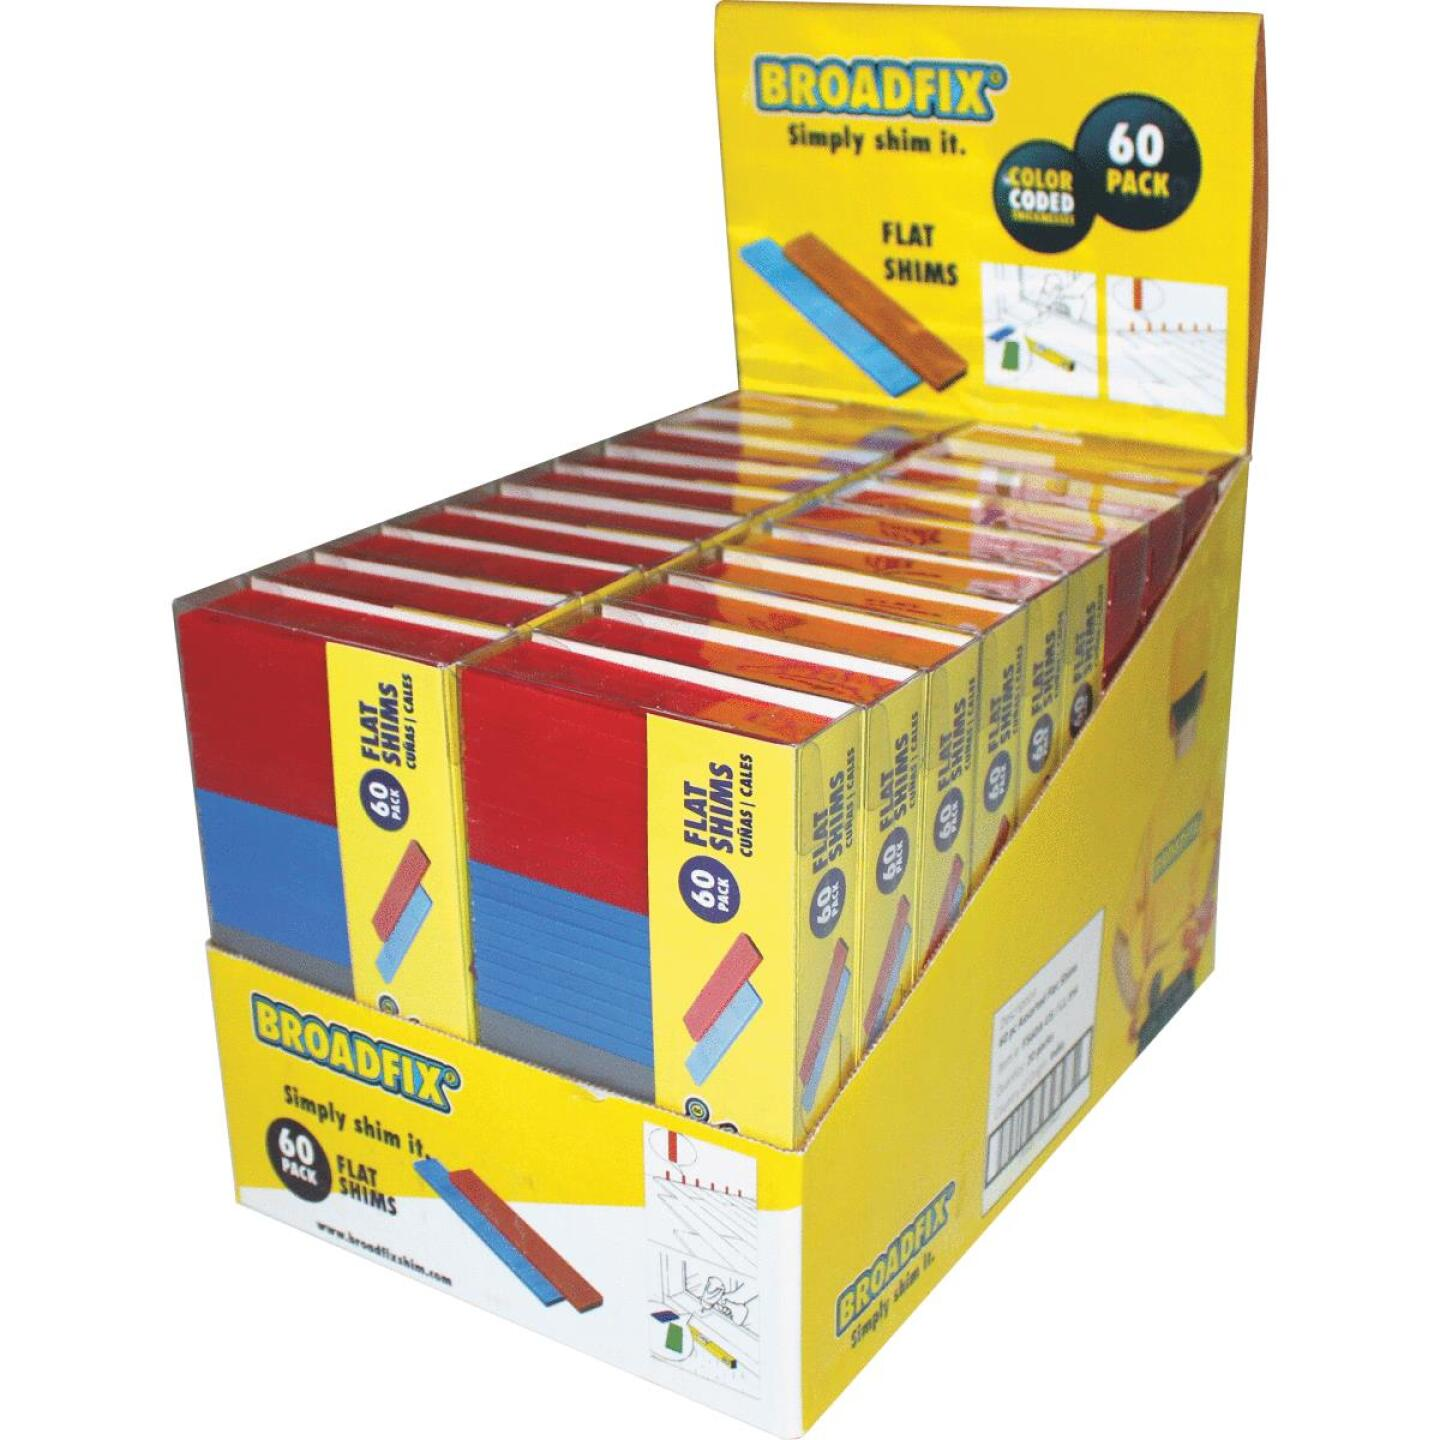 Broadfix 4 In. L Flat Polypropylene Shim, Assorted Thicknesses (60-Count) Image 1